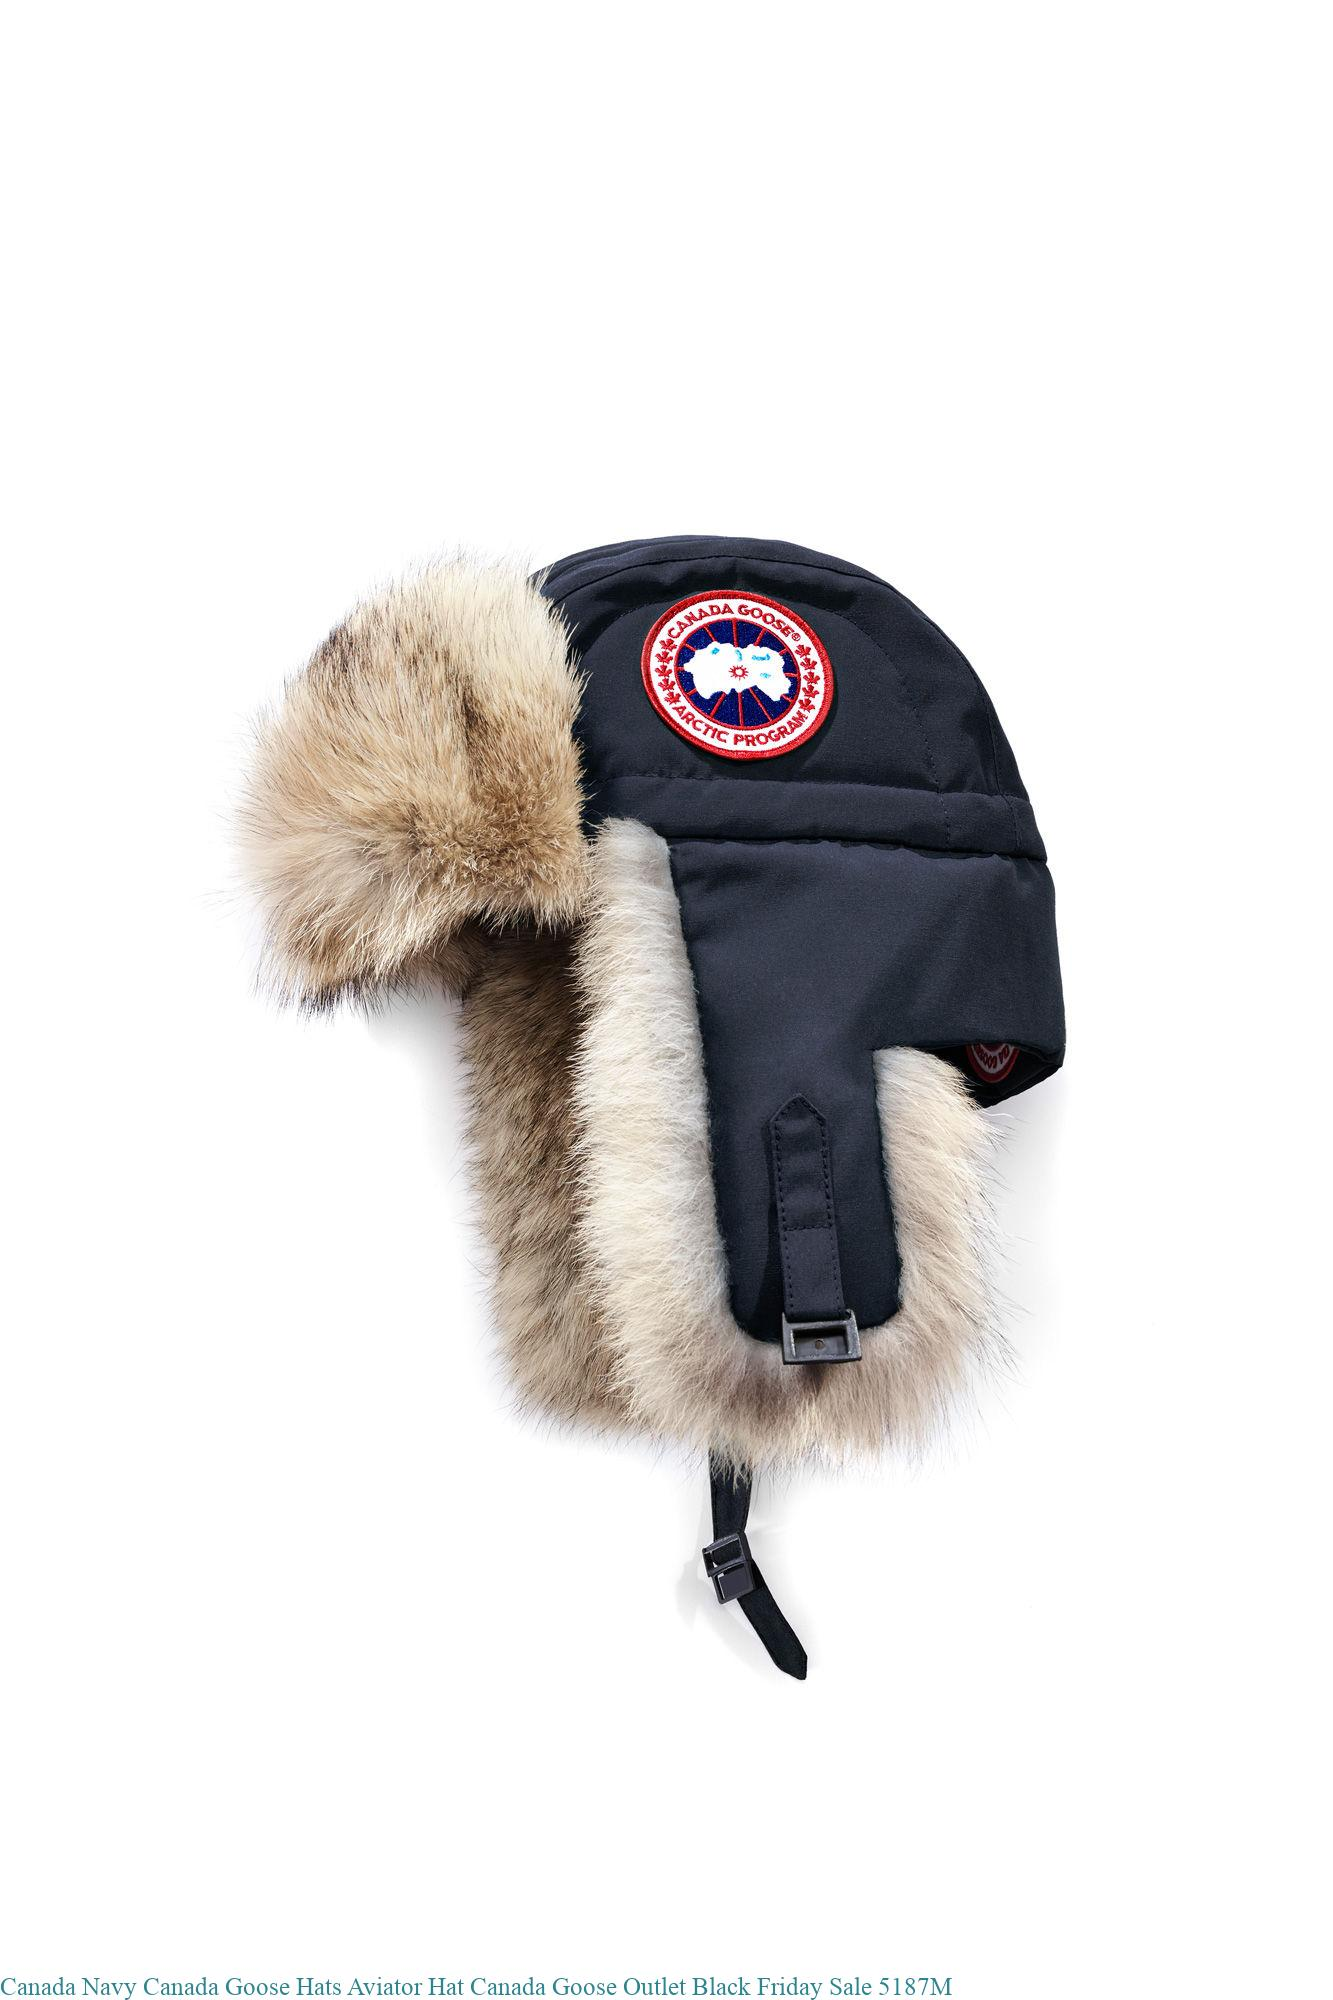 Canada Navy Canada Goose Hats Aviator Hat Canada Goose Outlet Black Friday  Sale 5187M – Cheap Canada Goose Outlet Store Jacket Expedition Parka Sale 08b82f52a